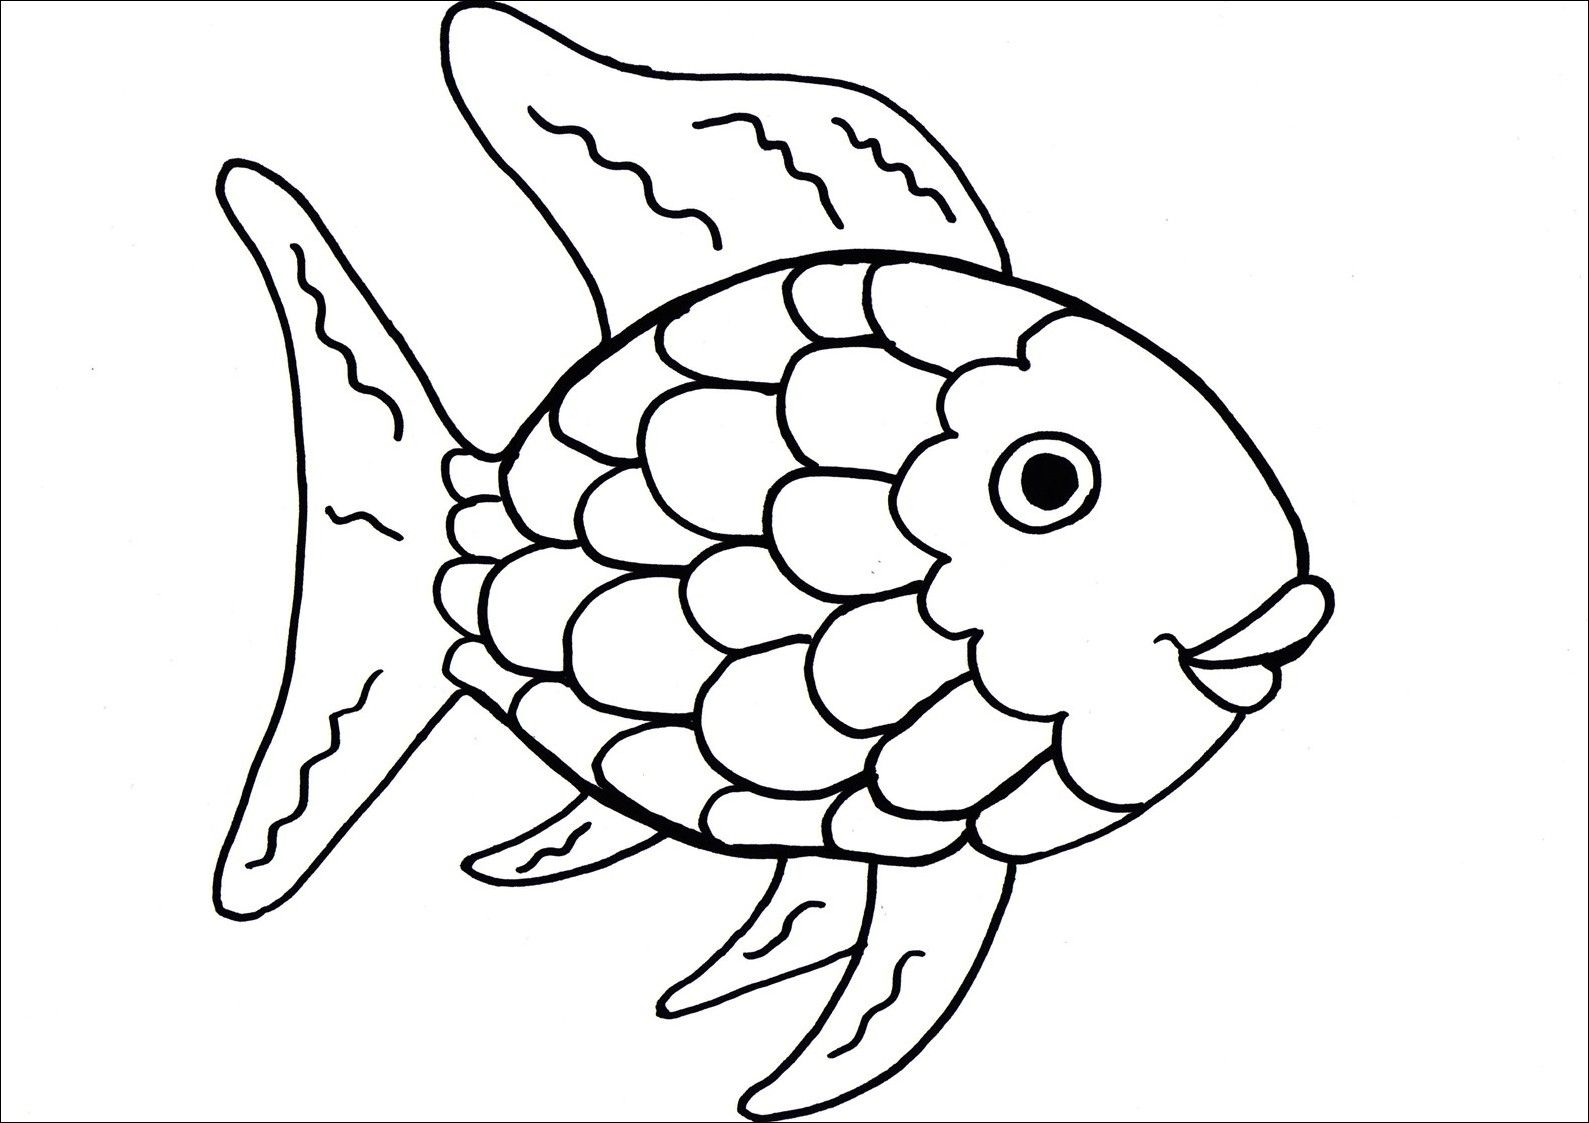 Rainbow Fish Coloring Pages Tagged With Rainbow Fish Coloring Page Jpg Rainbow Fish Coloring Page Rainbow Fish Template Fish Coloring Page